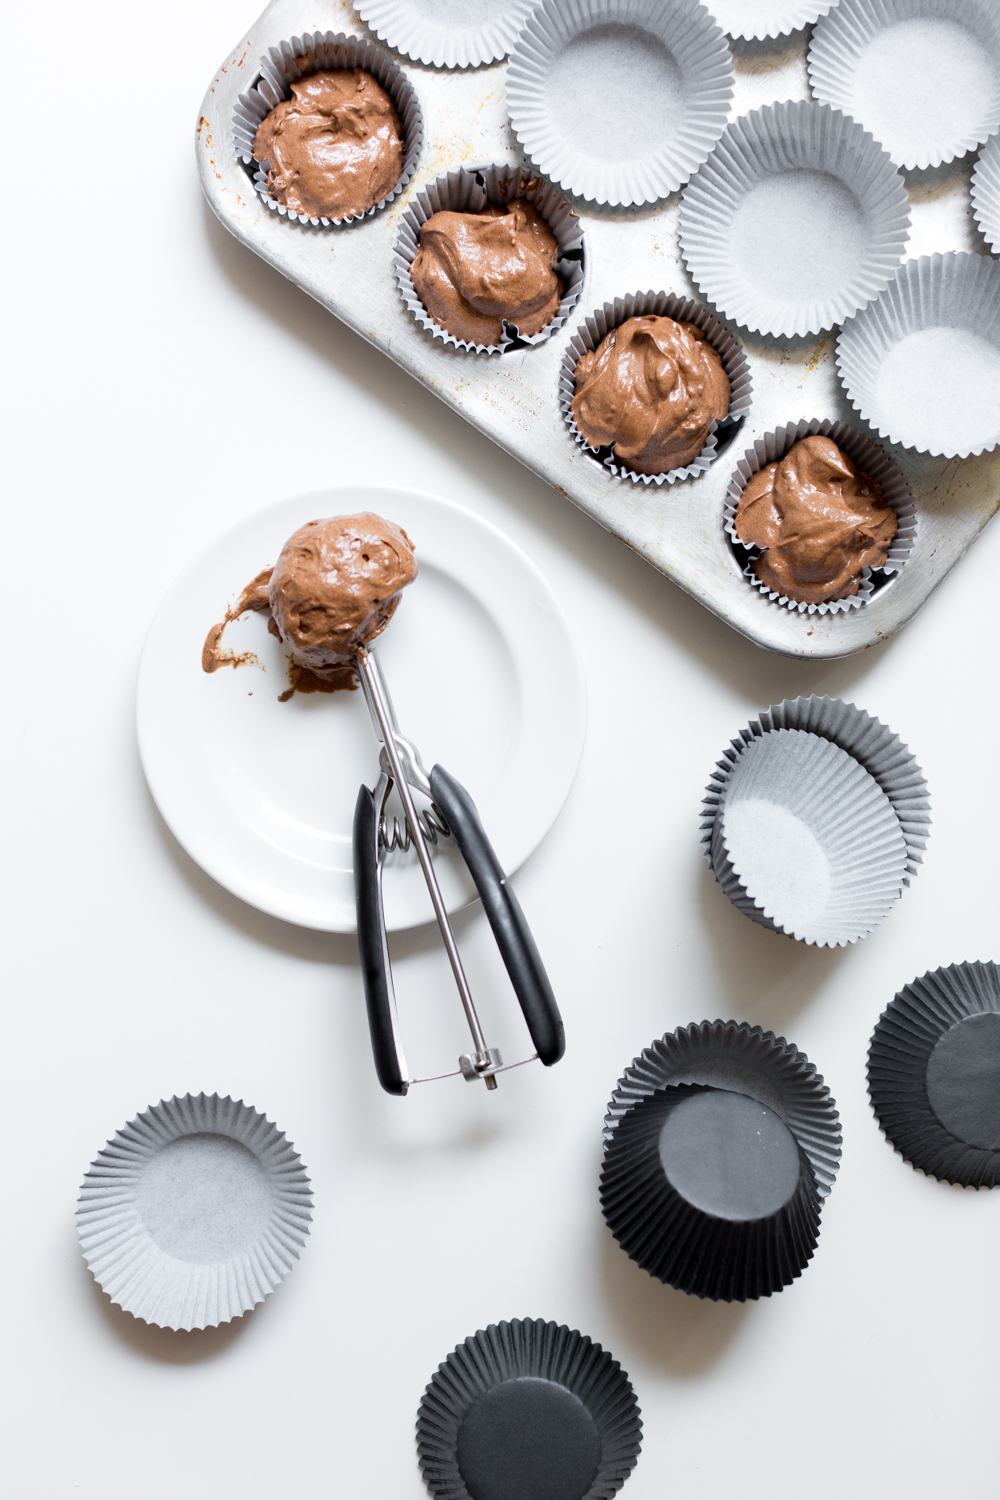 Scoop the batter into muffin tins lined with cupcake liners